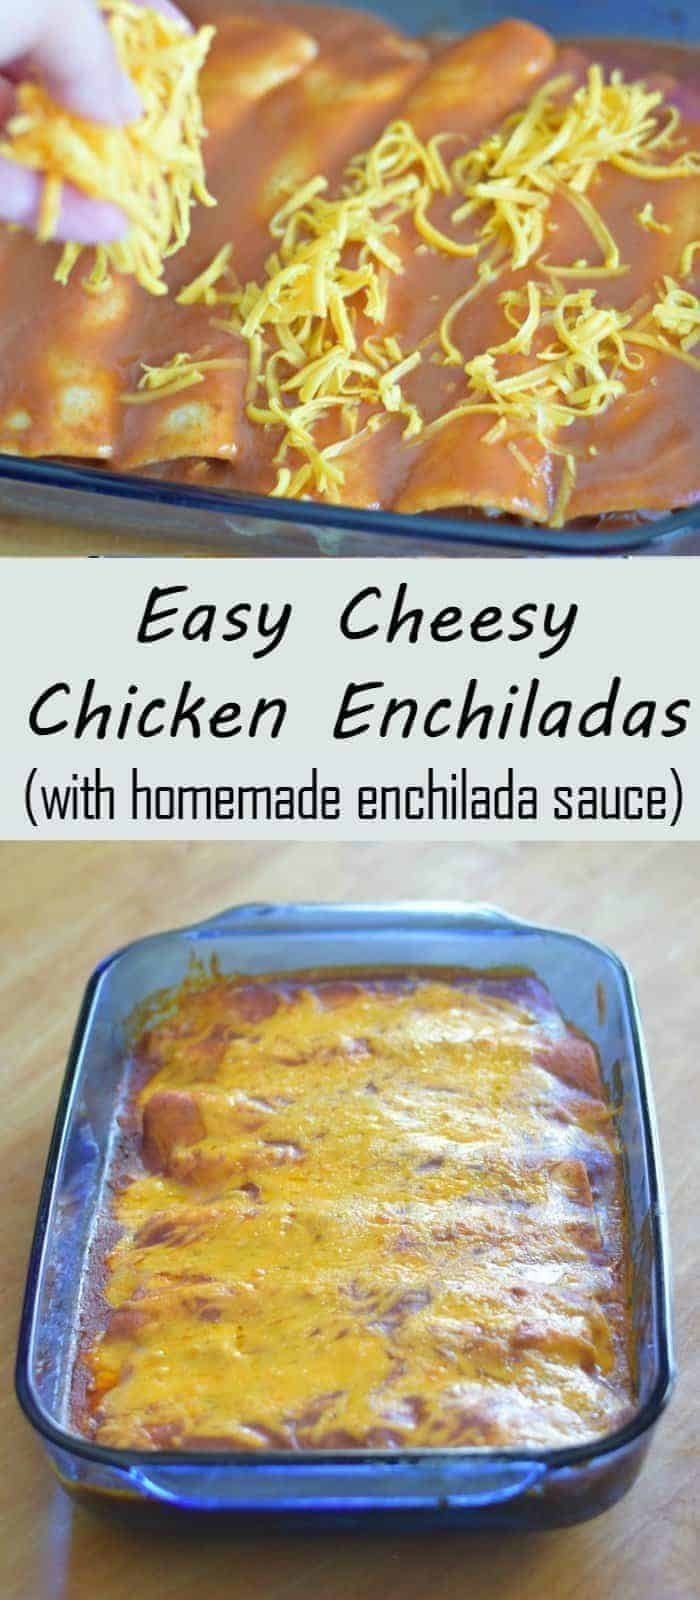 Easy cheesy chicken enchiladas recipe with homemade enchilada sauce. This kid friendly dinner is ready in about a half hour and uses flour tortillas to make it easier!